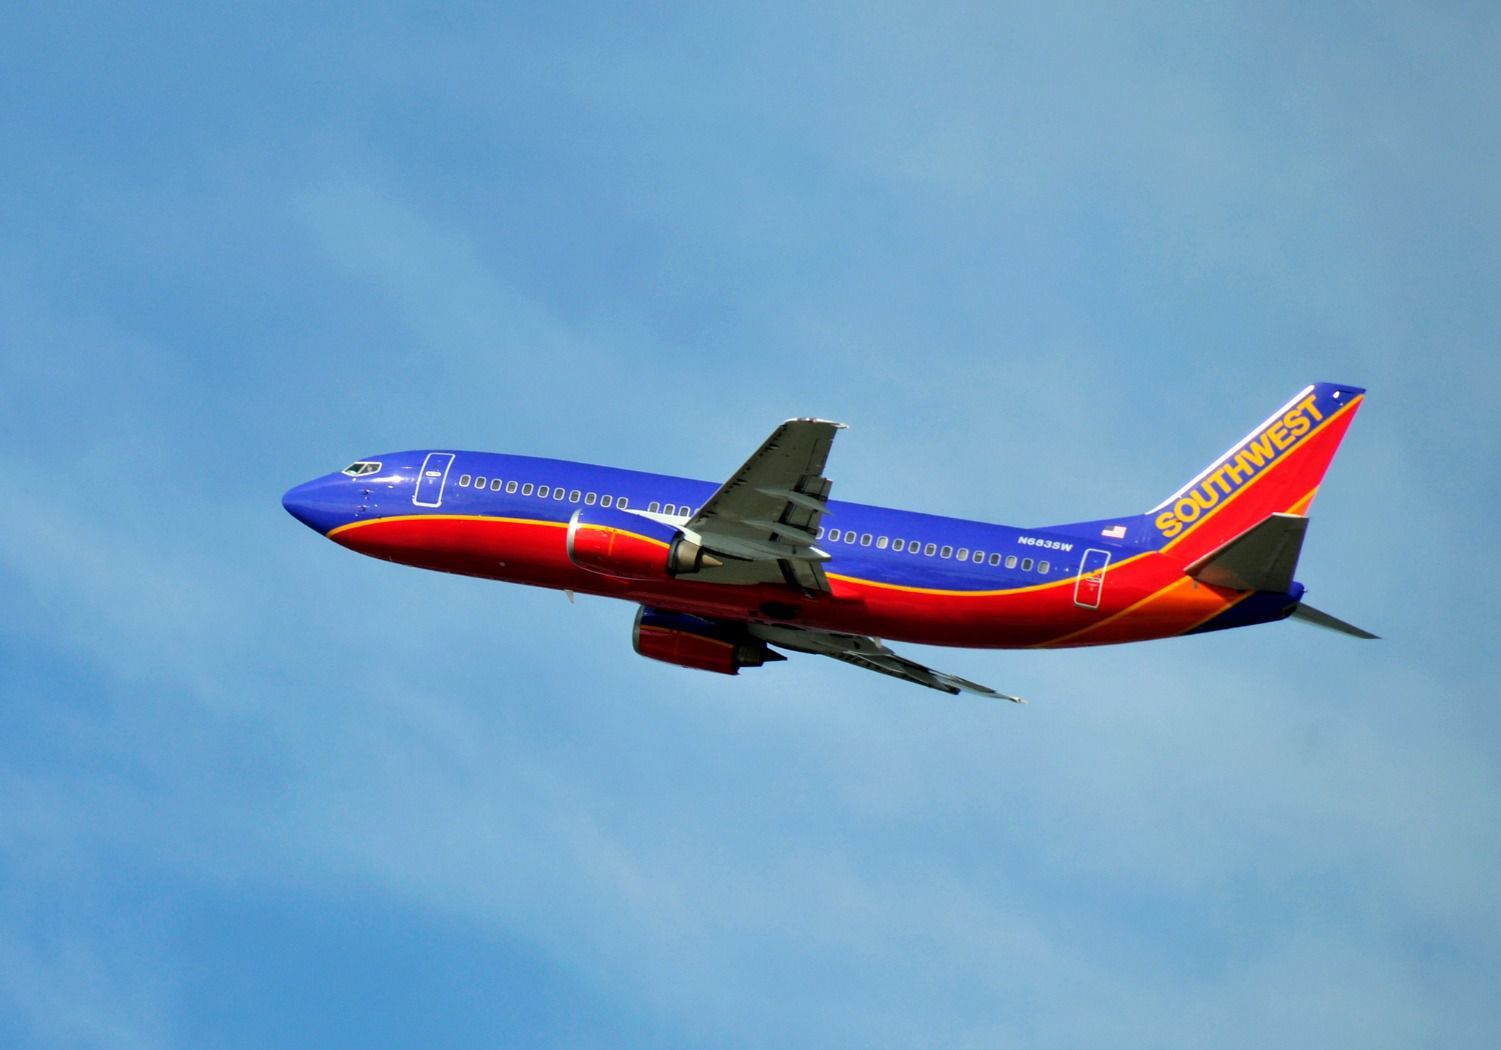 Southwest Airlines plane in mid-flight